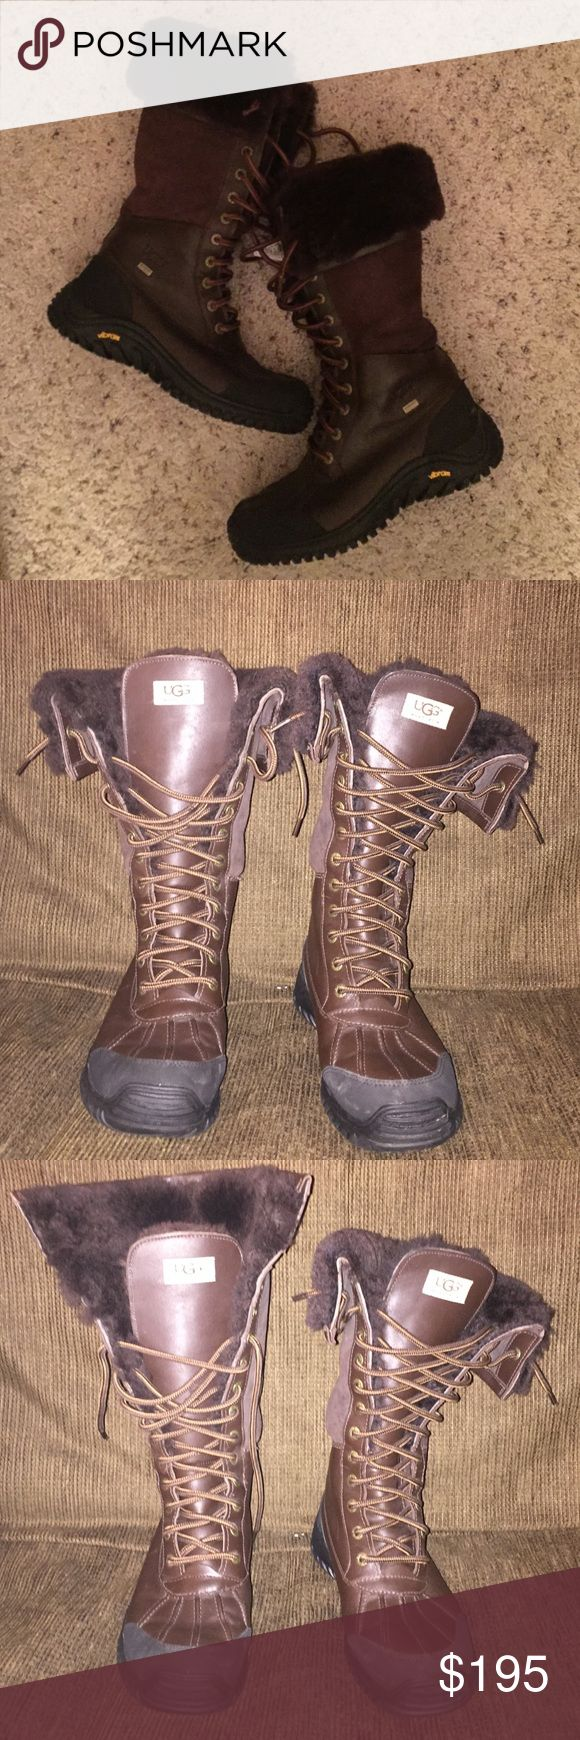 Authentic Ugg Adirondack boots Like new, maybe worn 3 times. Size 8, waterproof ugg adirondack boot. UGG Shoes Winter & Rain Boots